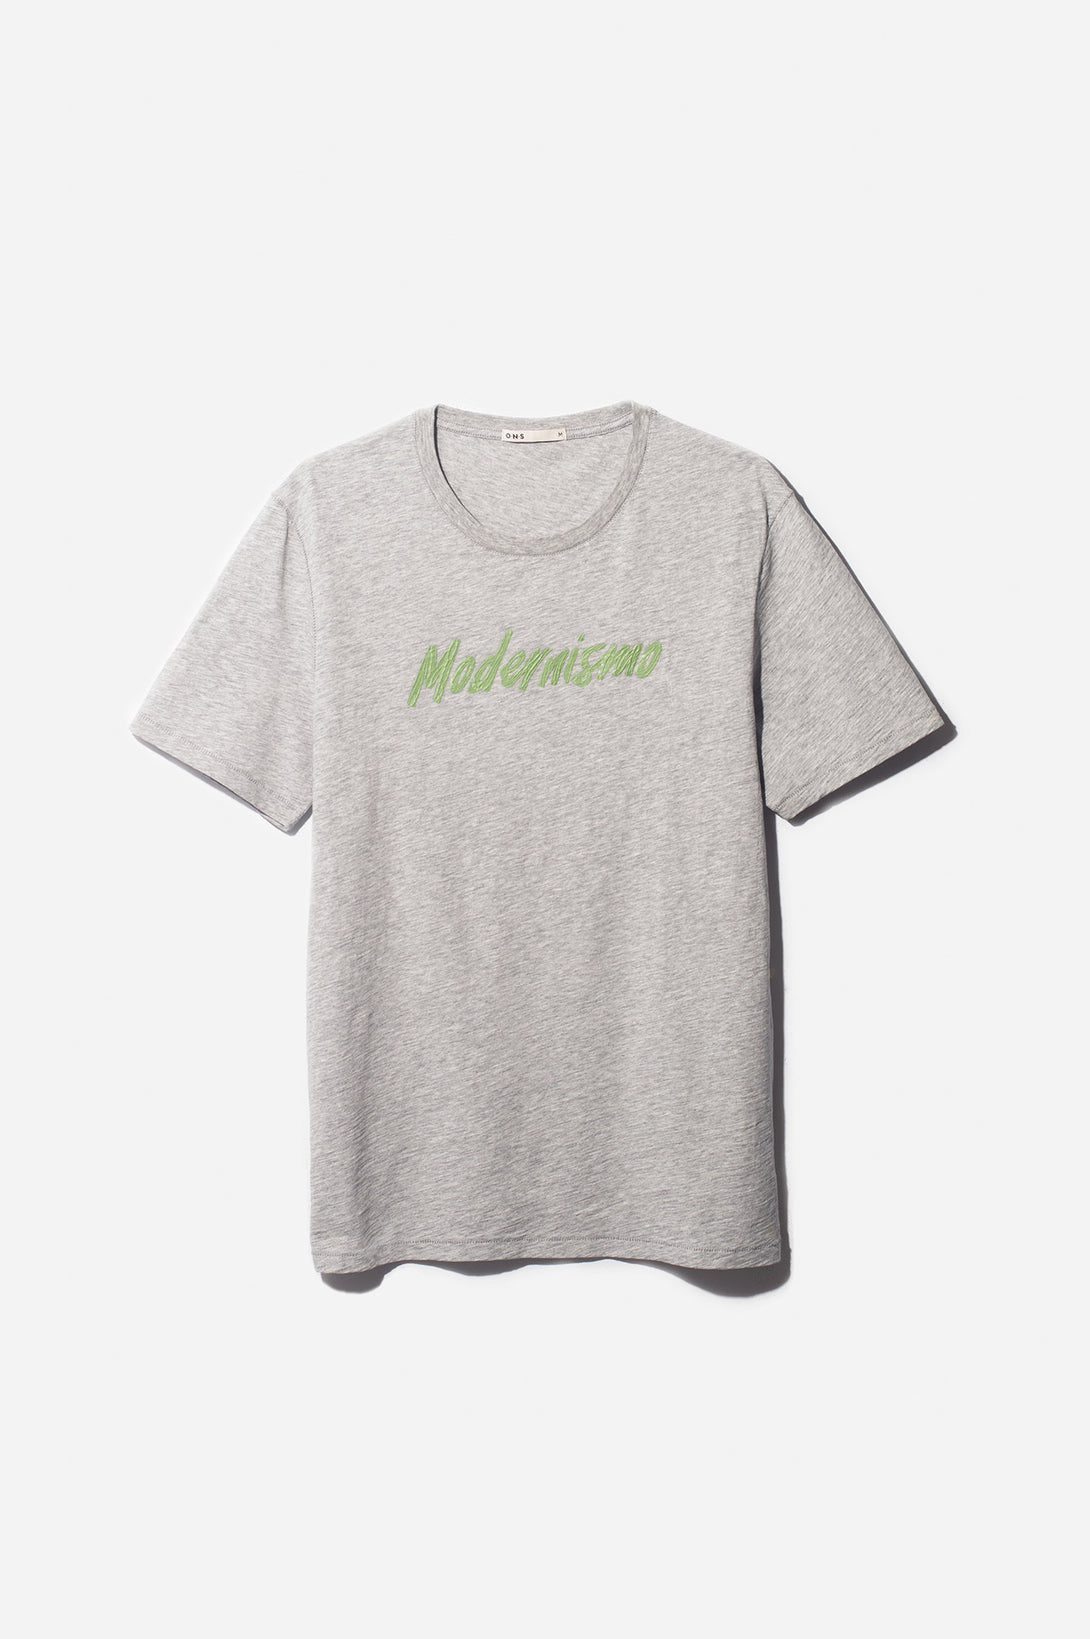 3D MODERNISMO PRINT TEE GREEN HERITAGE LINE